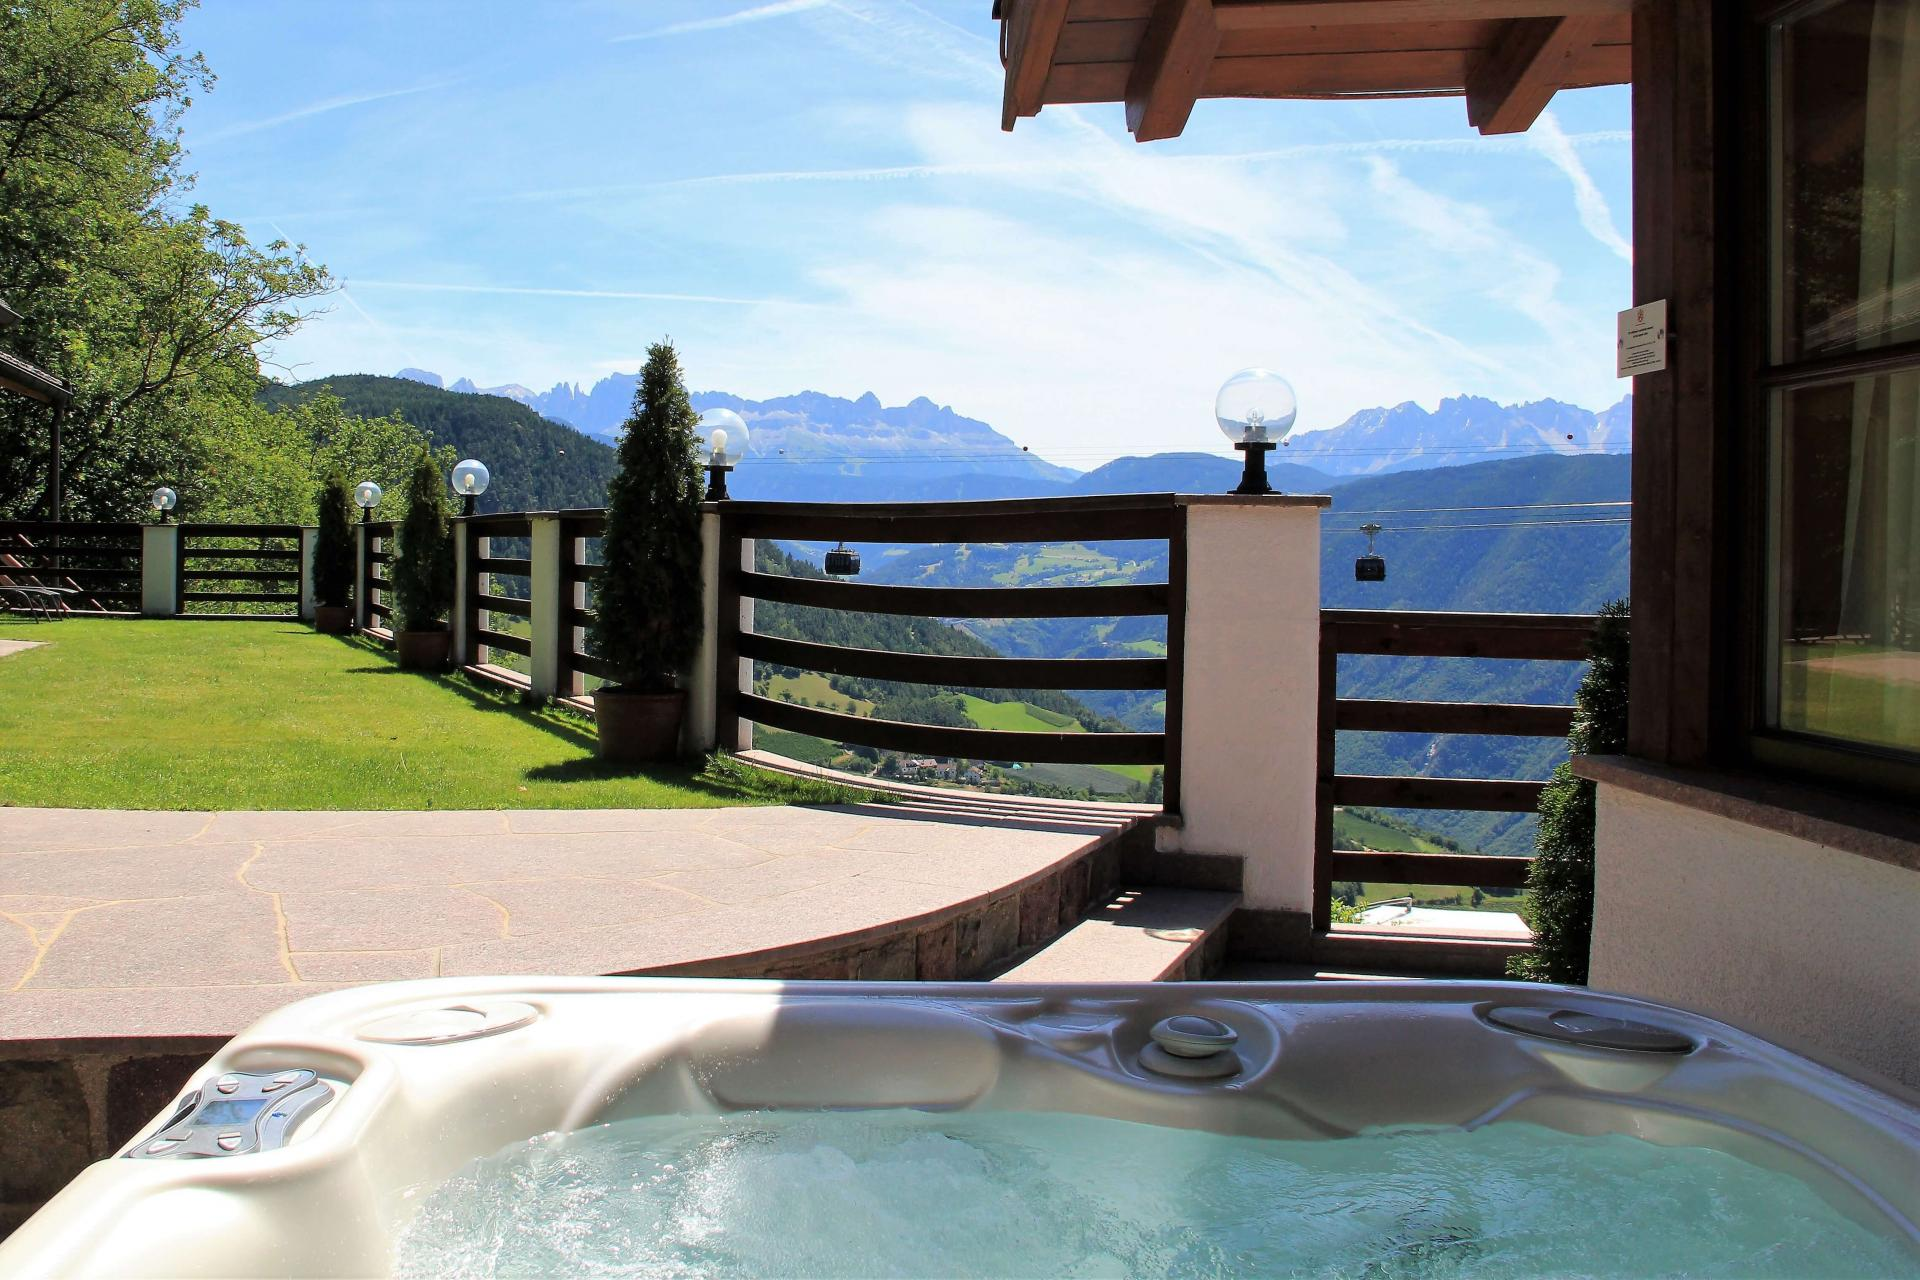 Italian Holiday Home Chalet Alps Suites with Whirlpool in South Tyrol